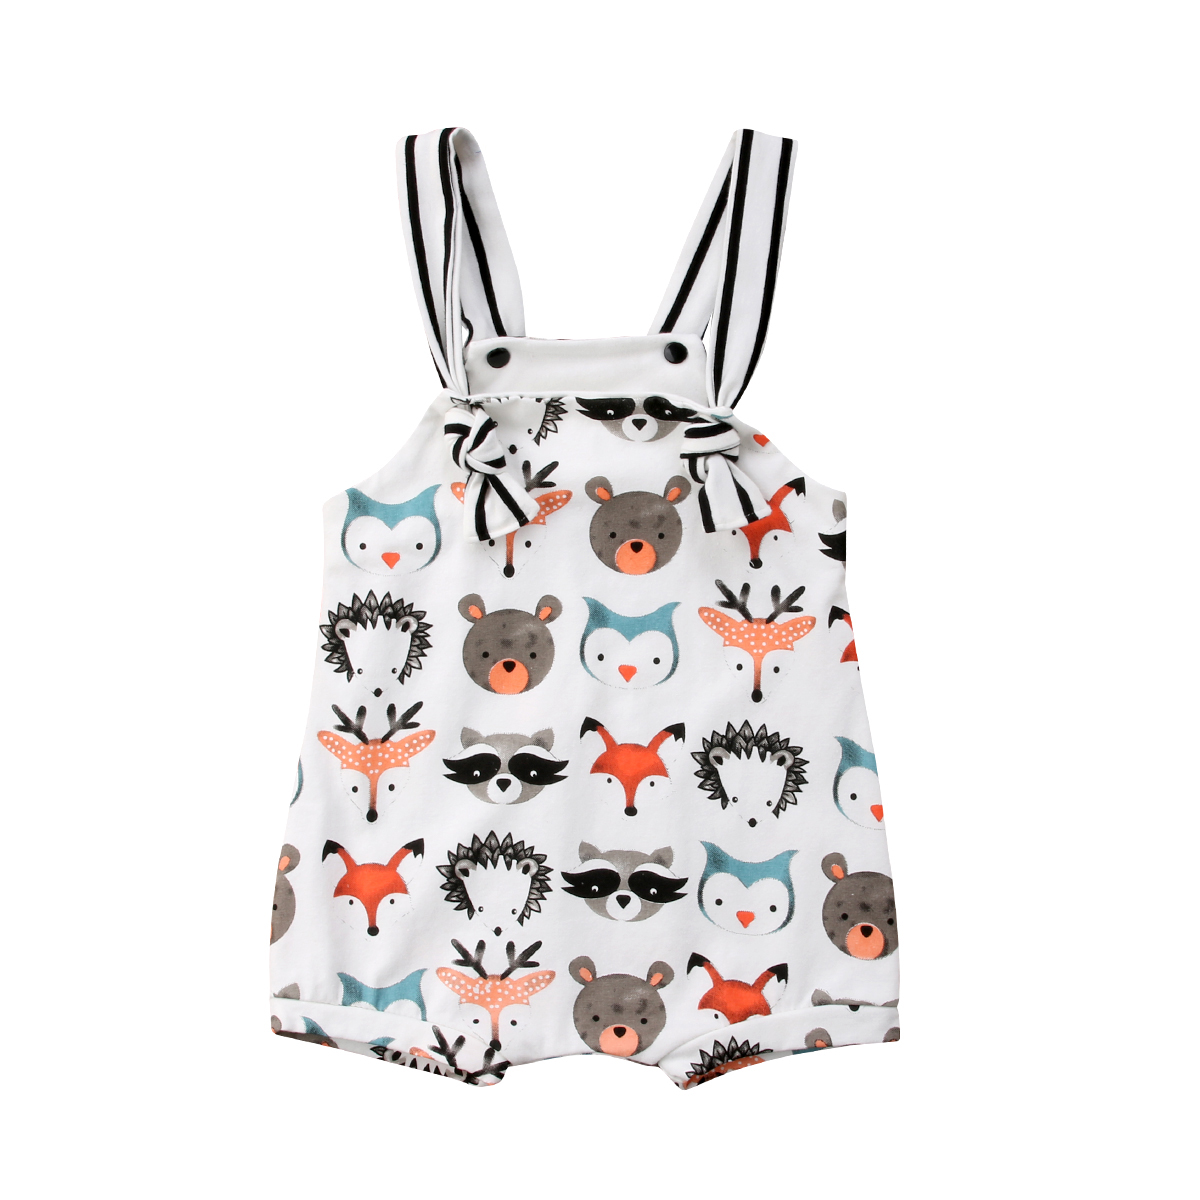 Newborn Baby Girl Strappy Romper Jumpsuit Bodysuit Clothes Outfit Sets Romper Jumpsuit Clothes Summer Sunsuit